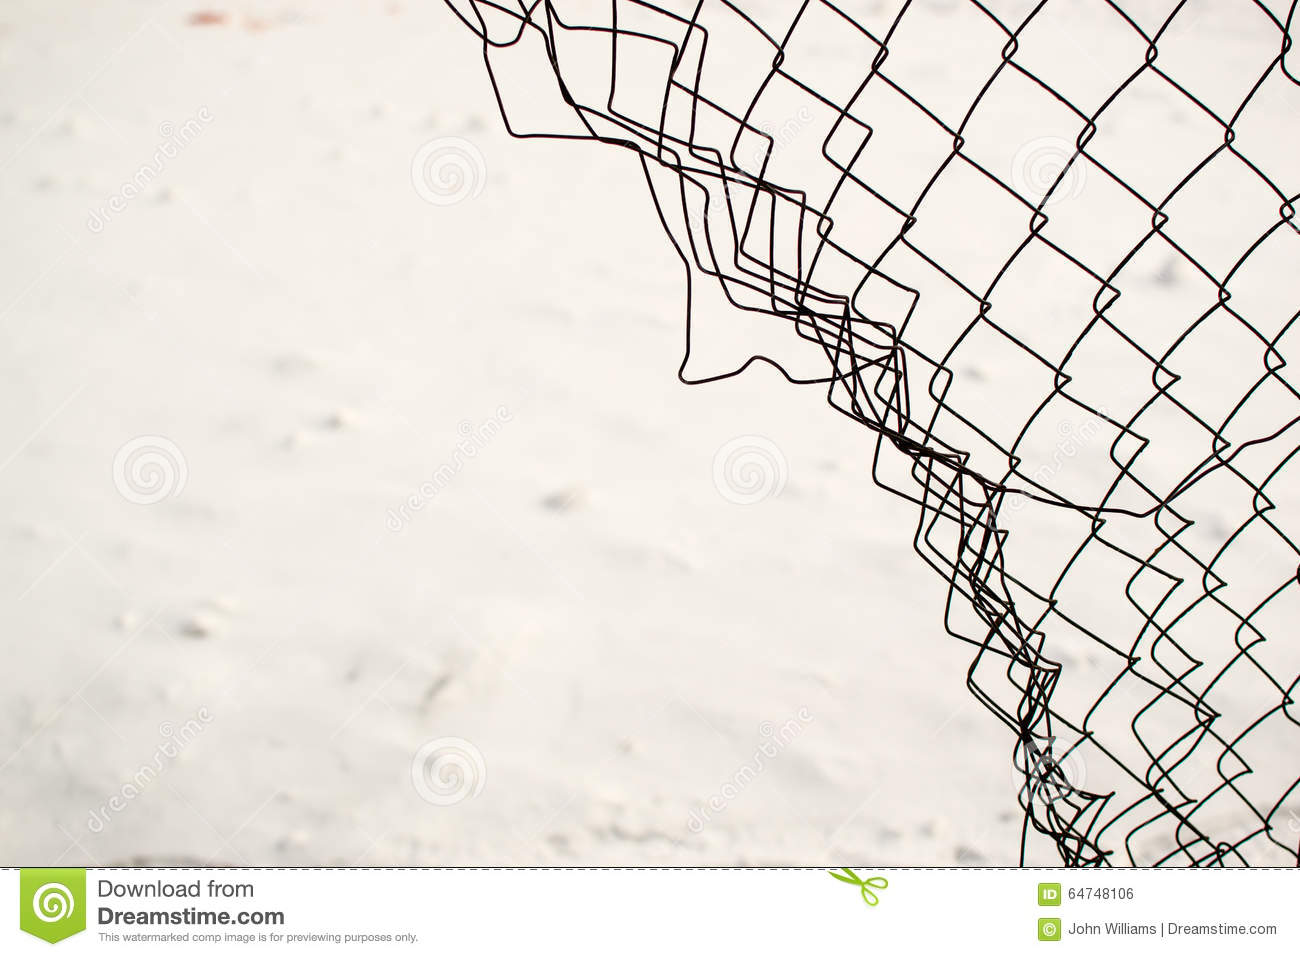 Broken chain link fence png Chrome Chain Broken Chain Link Fence Dreamstimecom Broken Chain Link Fence Stock Photo Image Of Security 64748106